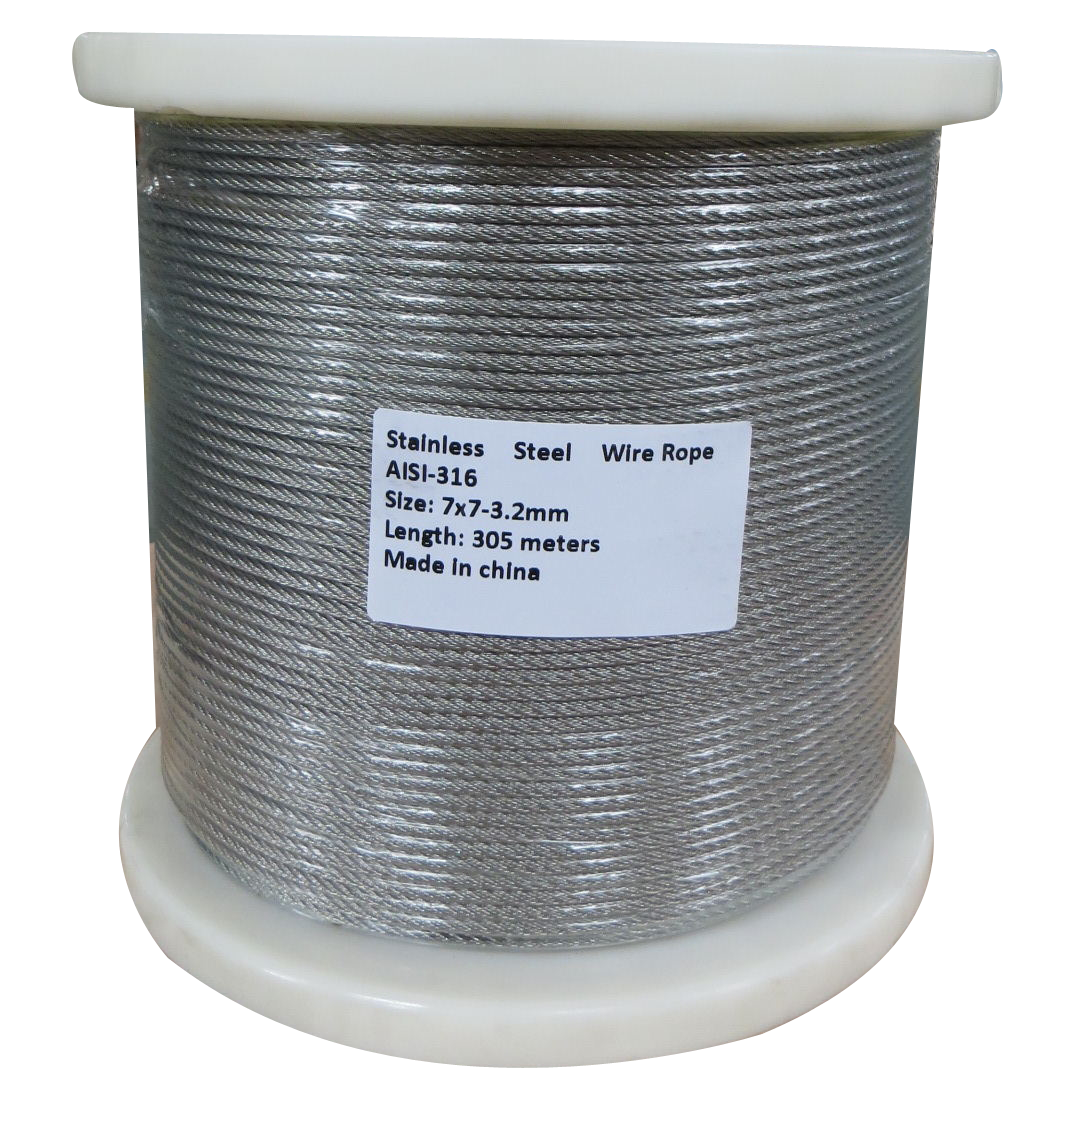 305M G316 STAINLESS STEEL WIRE ROPE 3.2MM BALUSTRADE  Z2573